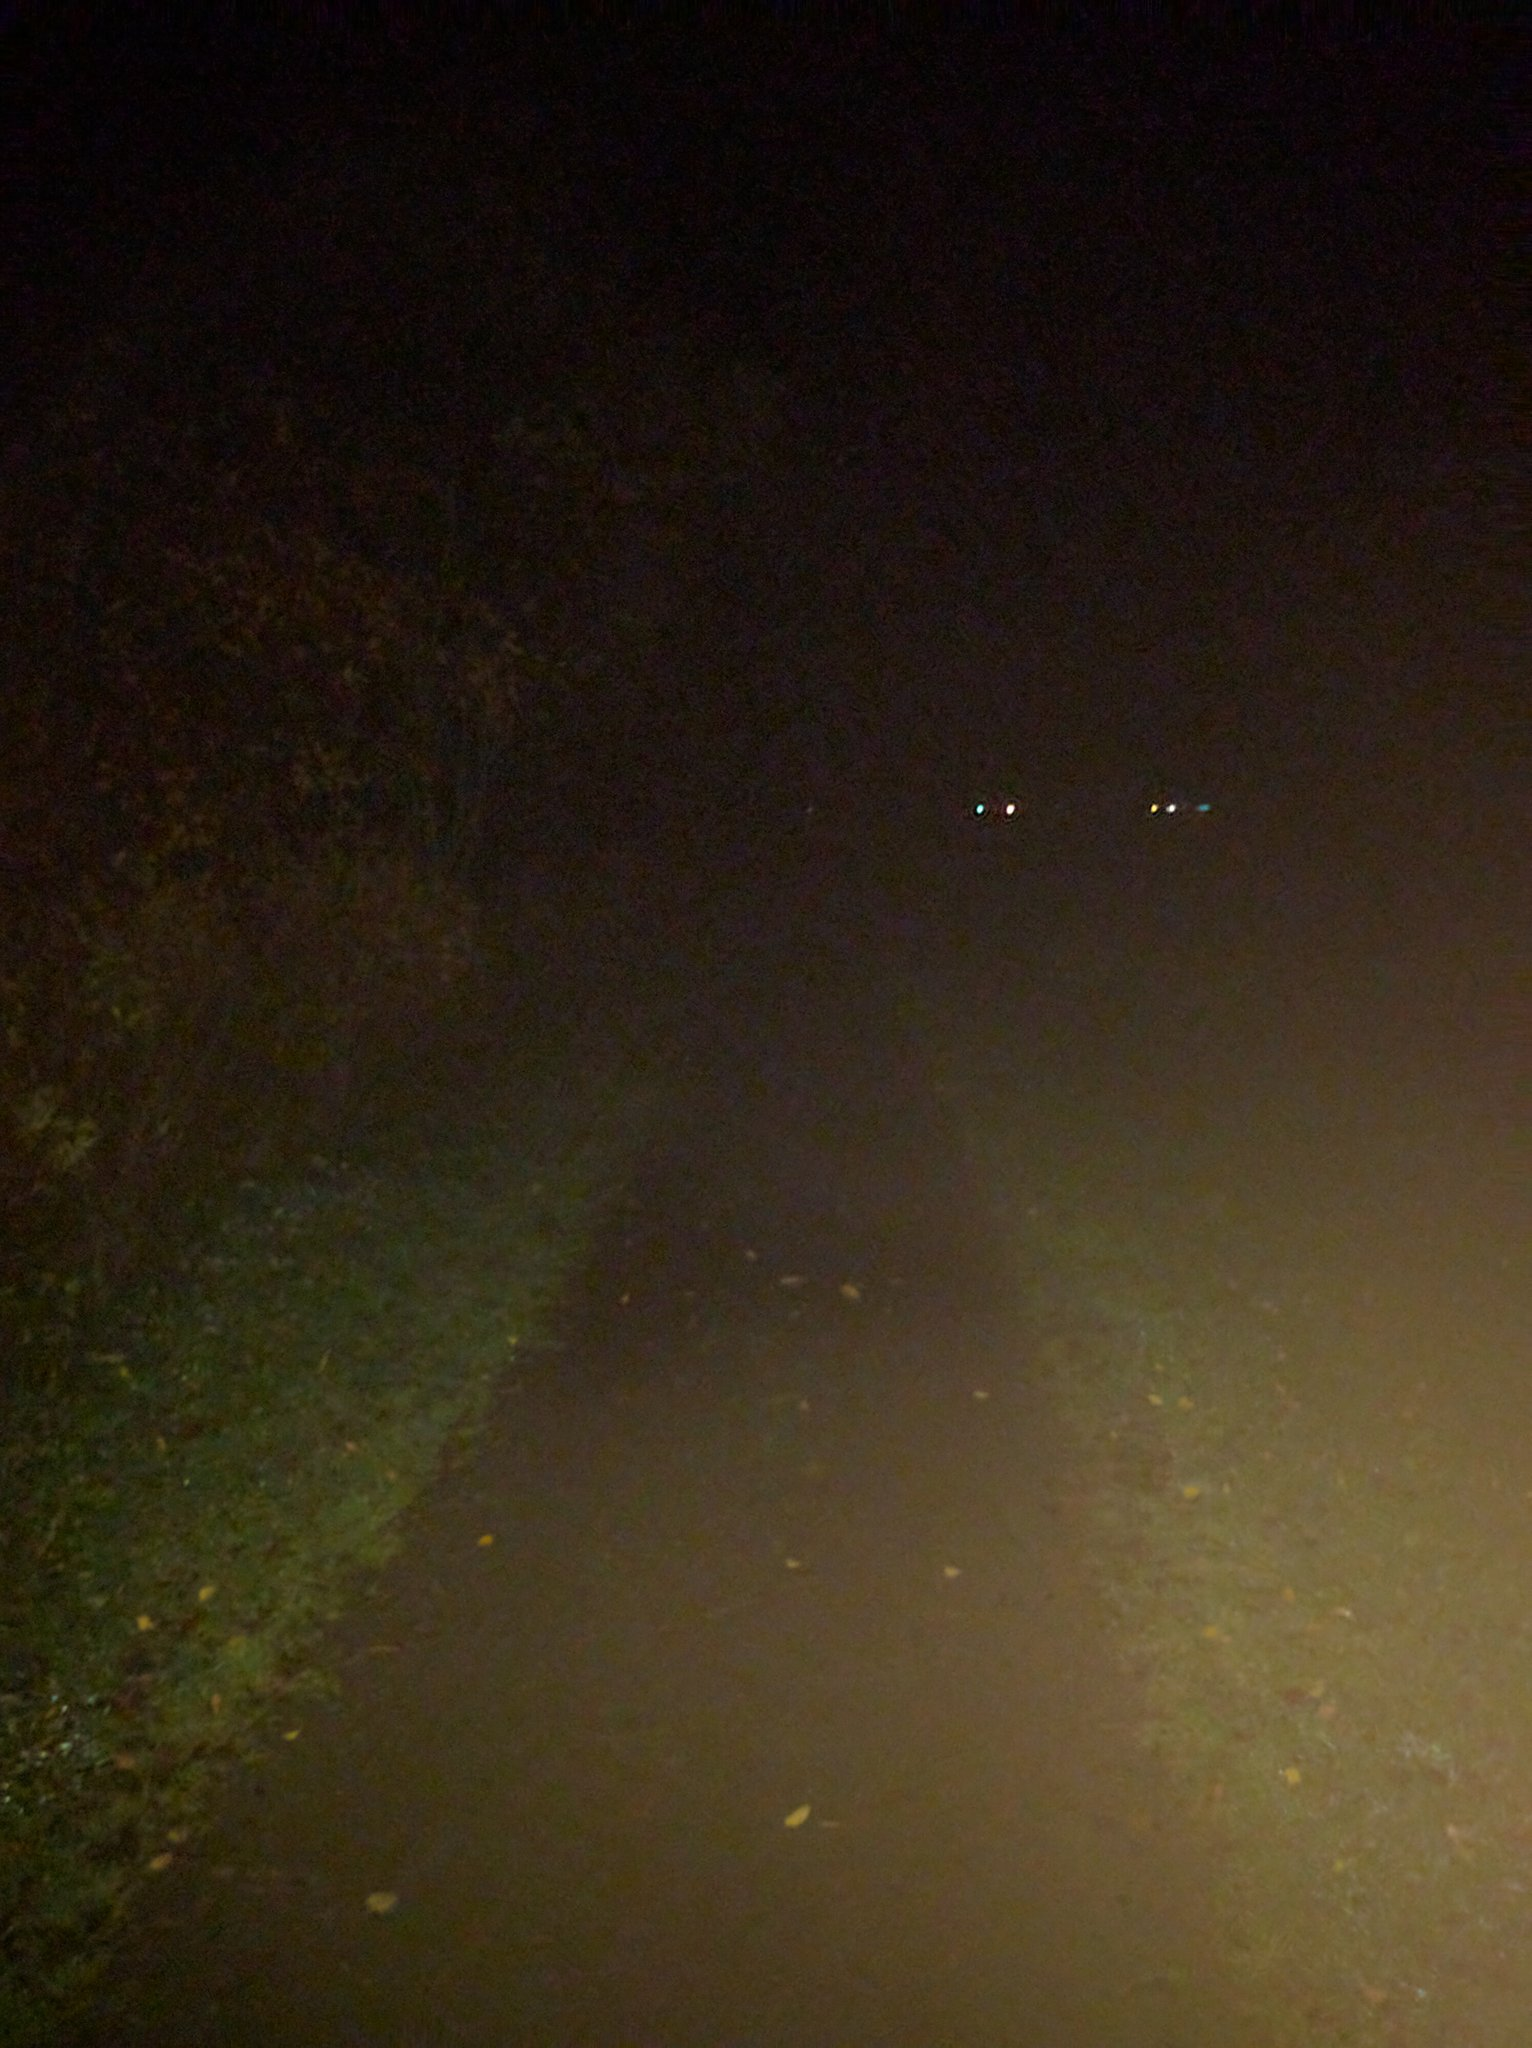 The best way to get a fast time in a Virtual 5km? Run at midnight on a well known nature trail #stepsforkindness @RandomActsOrg https://t.co/S6xt2kH07c